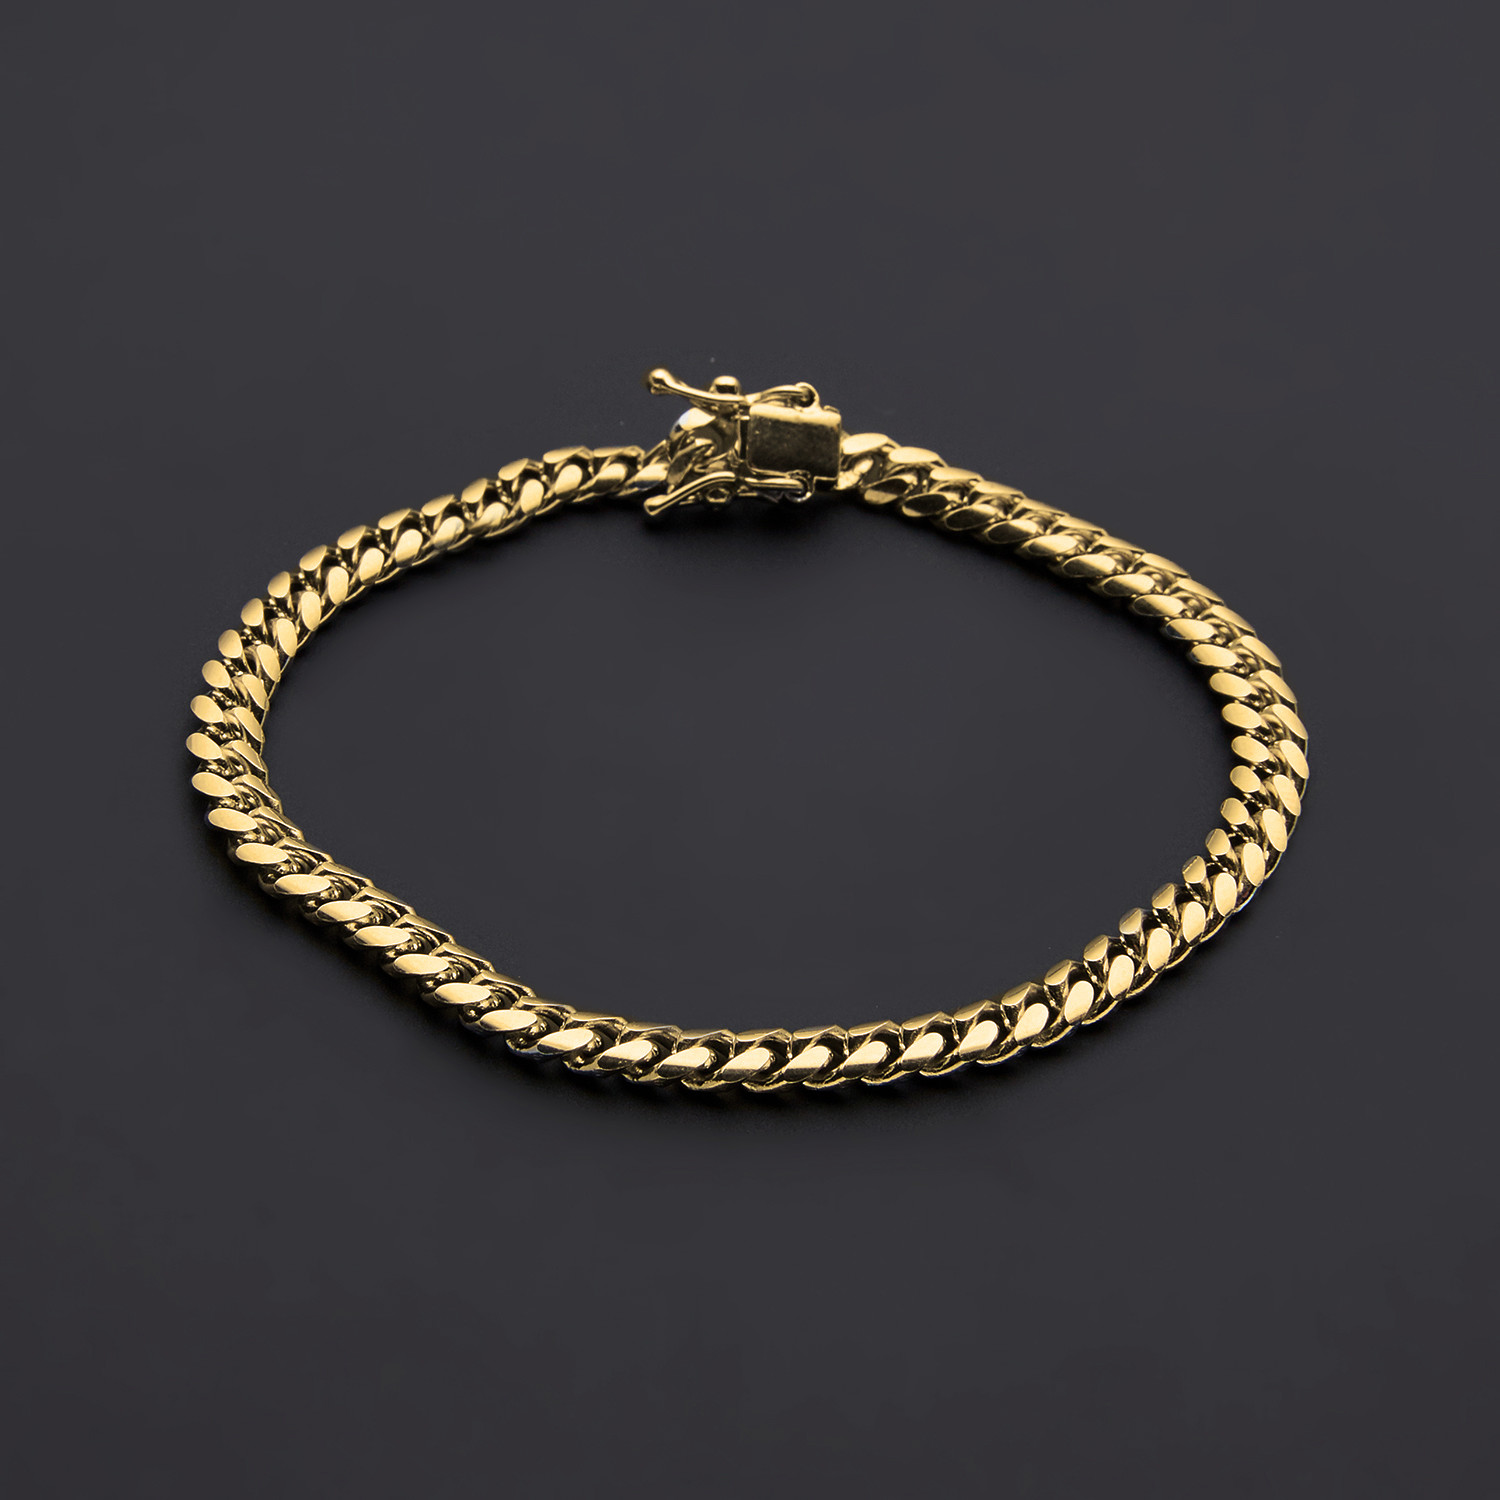 86cb6ff4b2697 Miami Cuban Link Chain Bracelet // Gold Plated